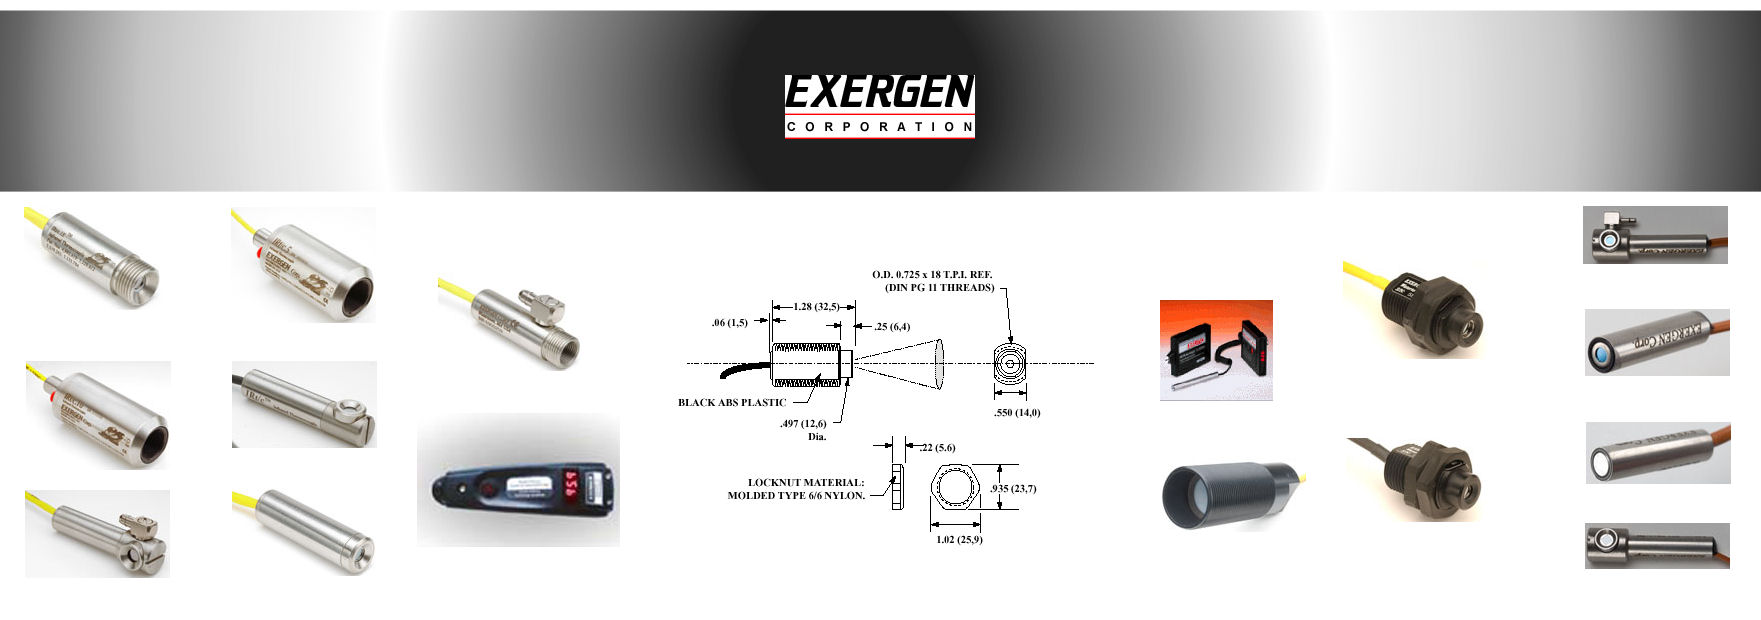 Exergen Infrared Thermocouples